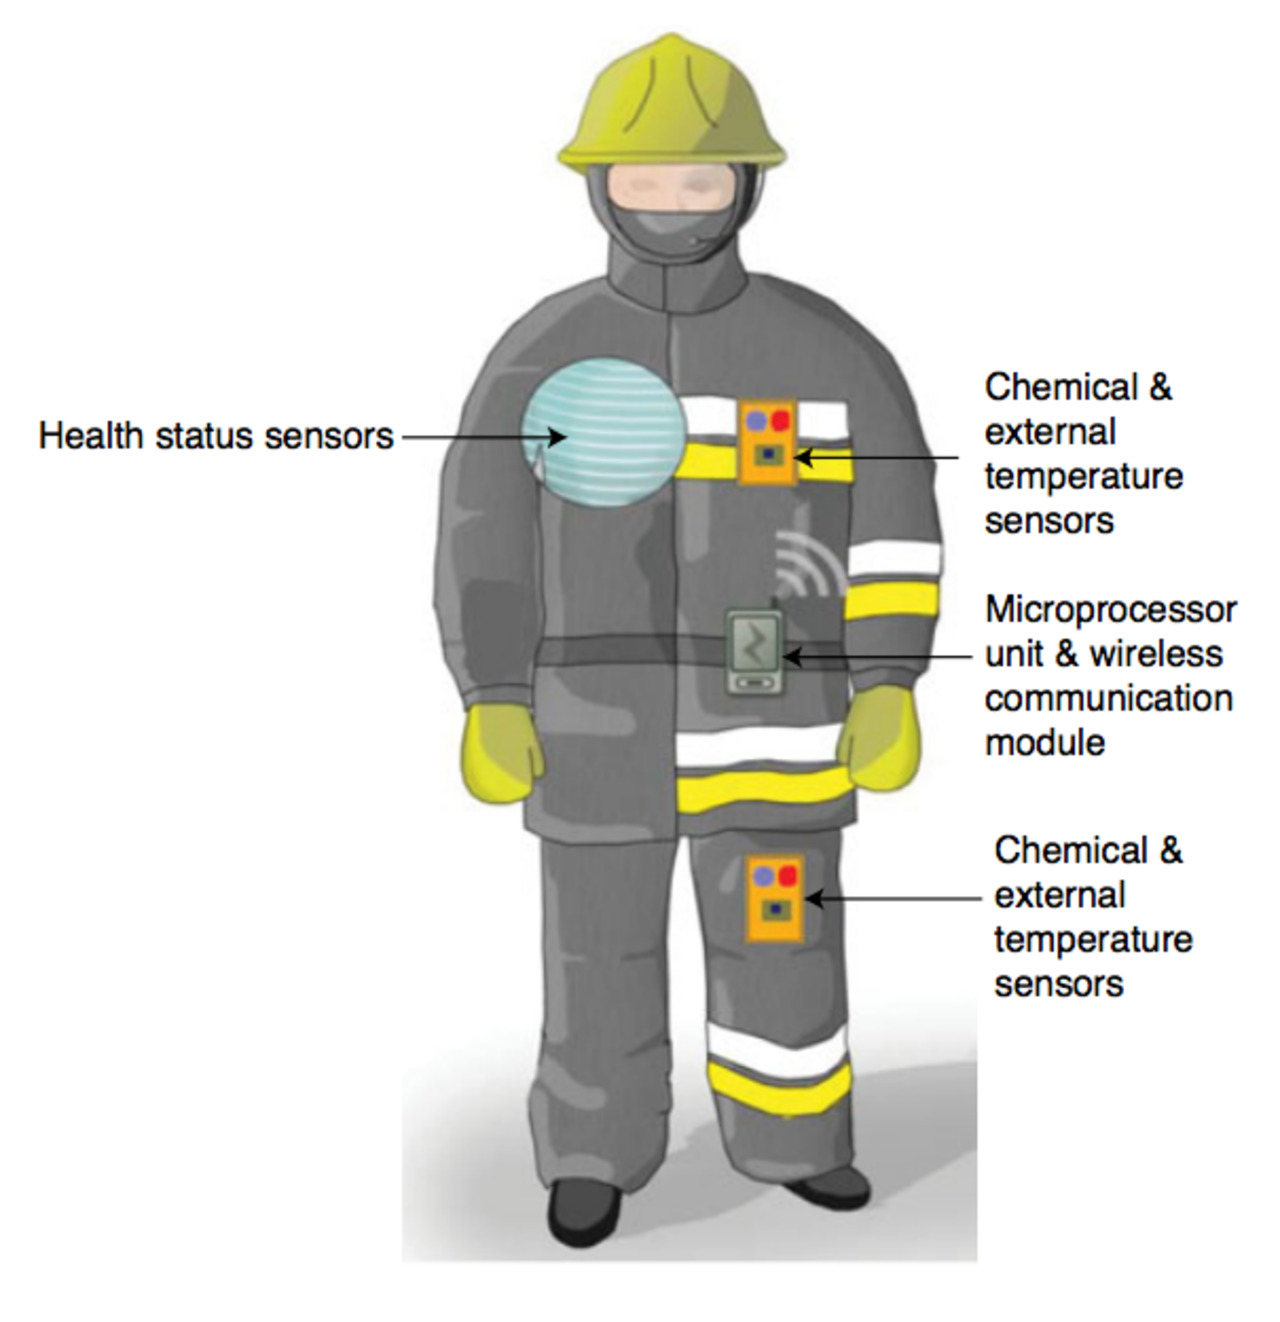 hight resolution of fire technology the future of wearable technology